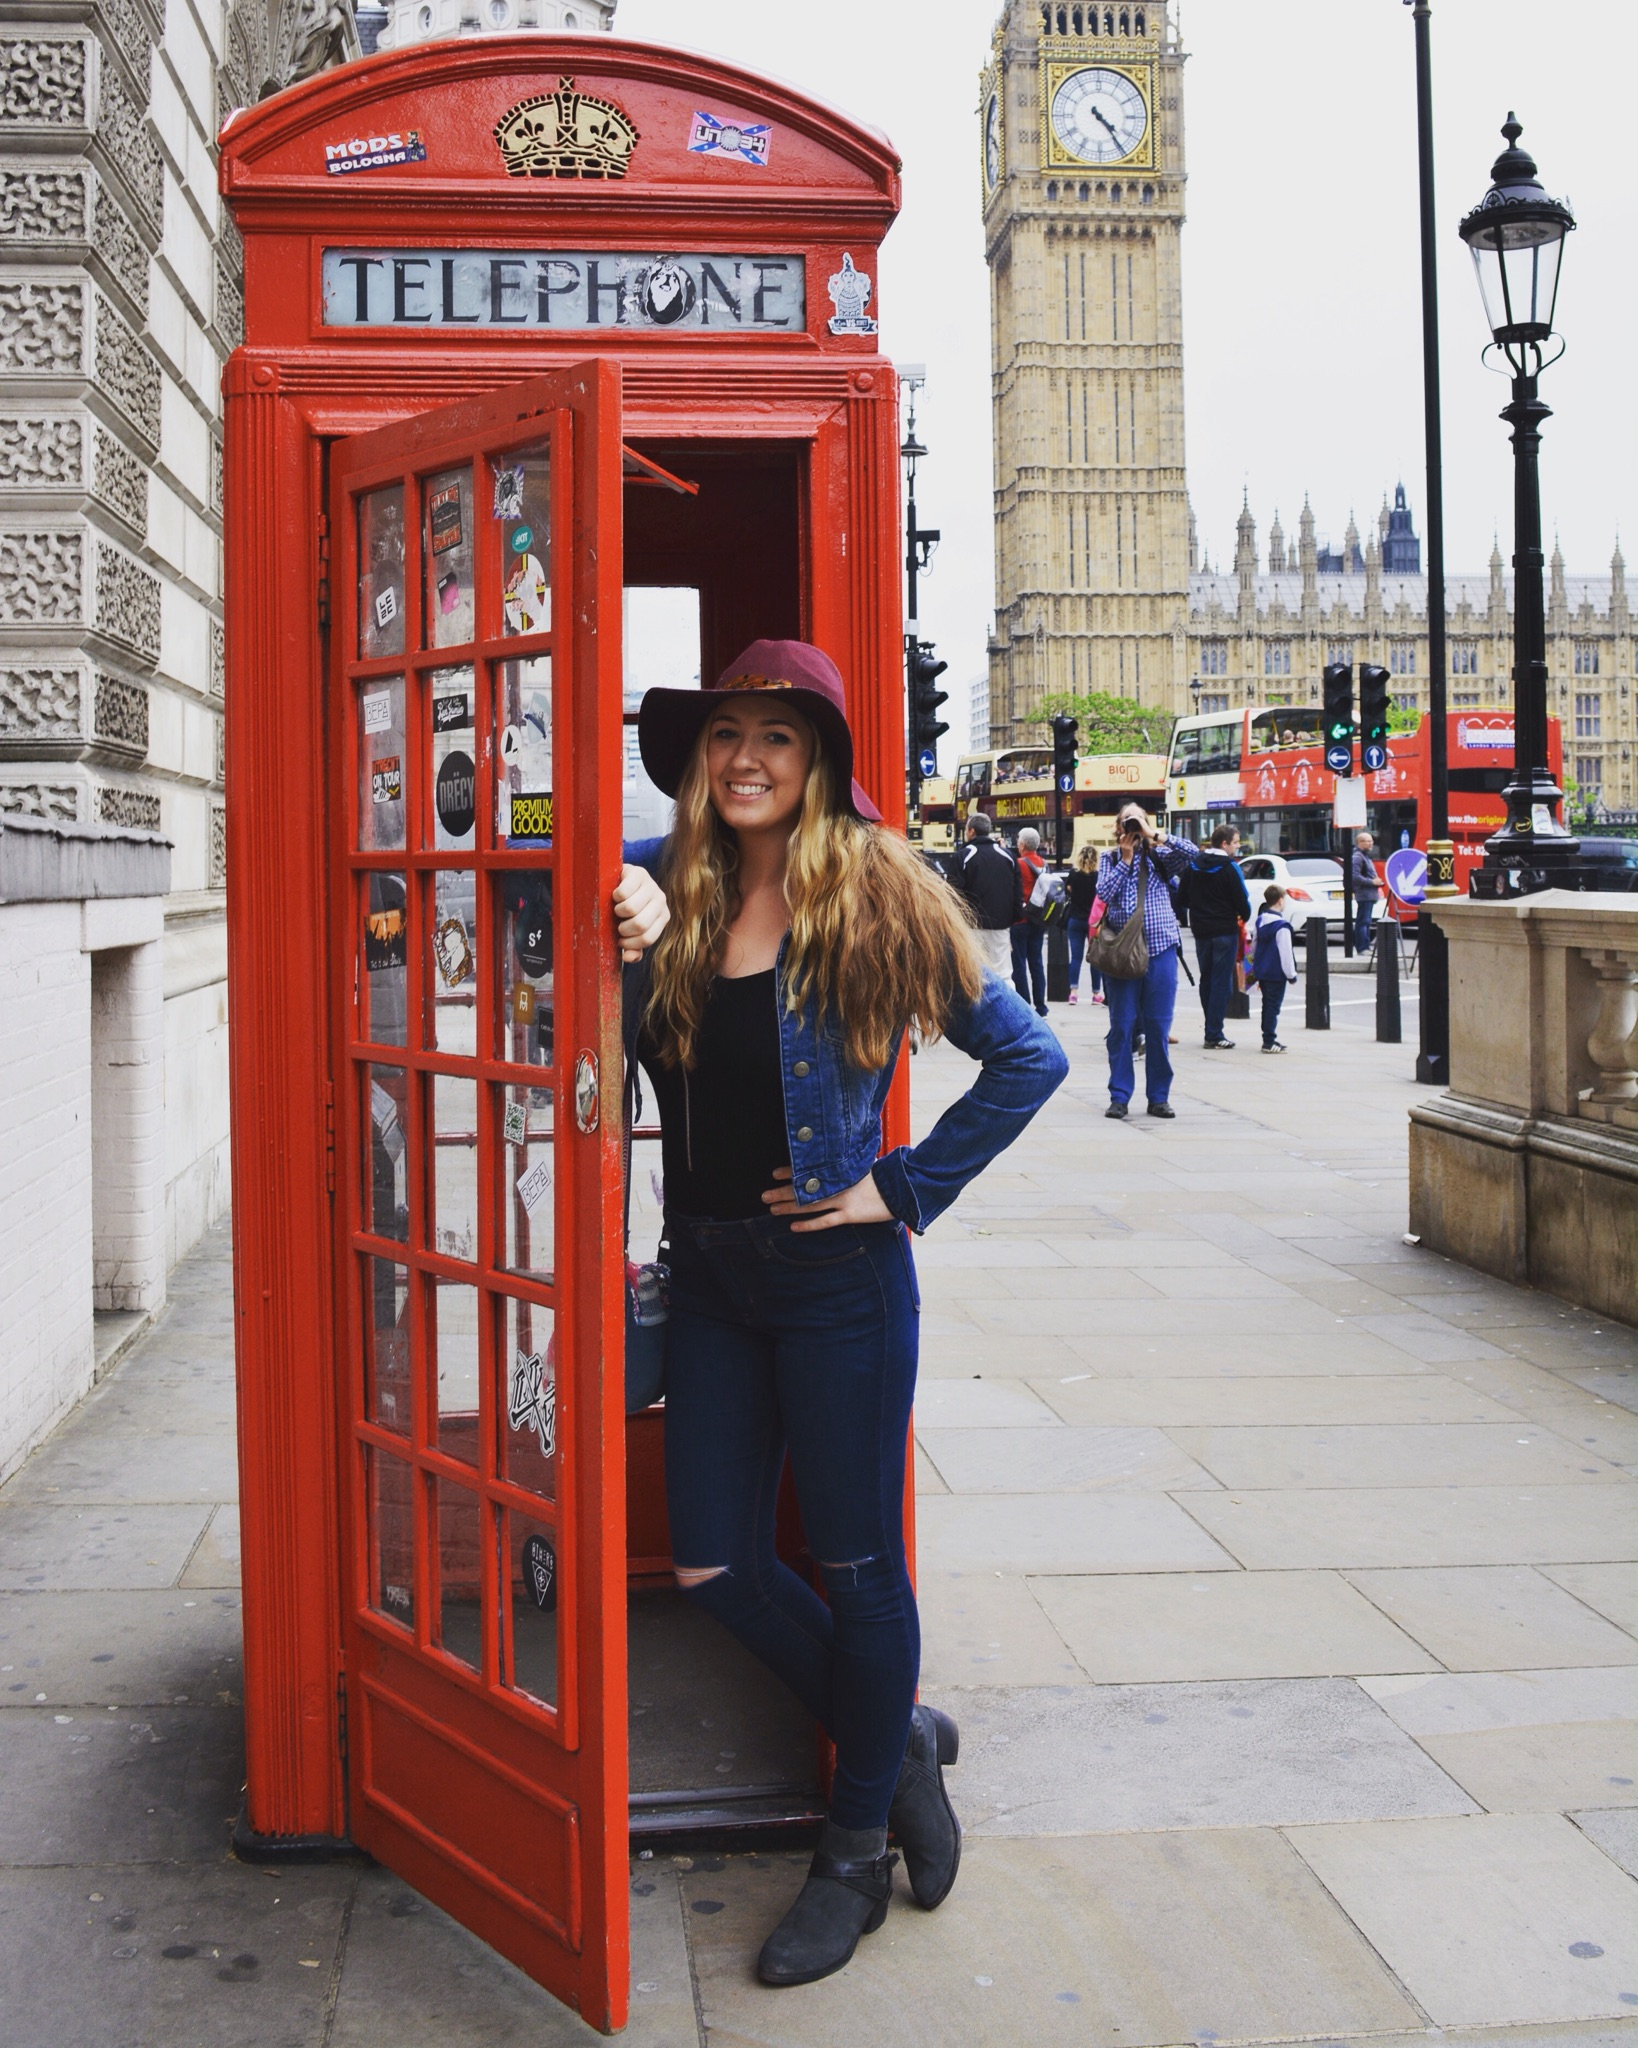 Iris' daughter Erin during her time studying abroad in London.